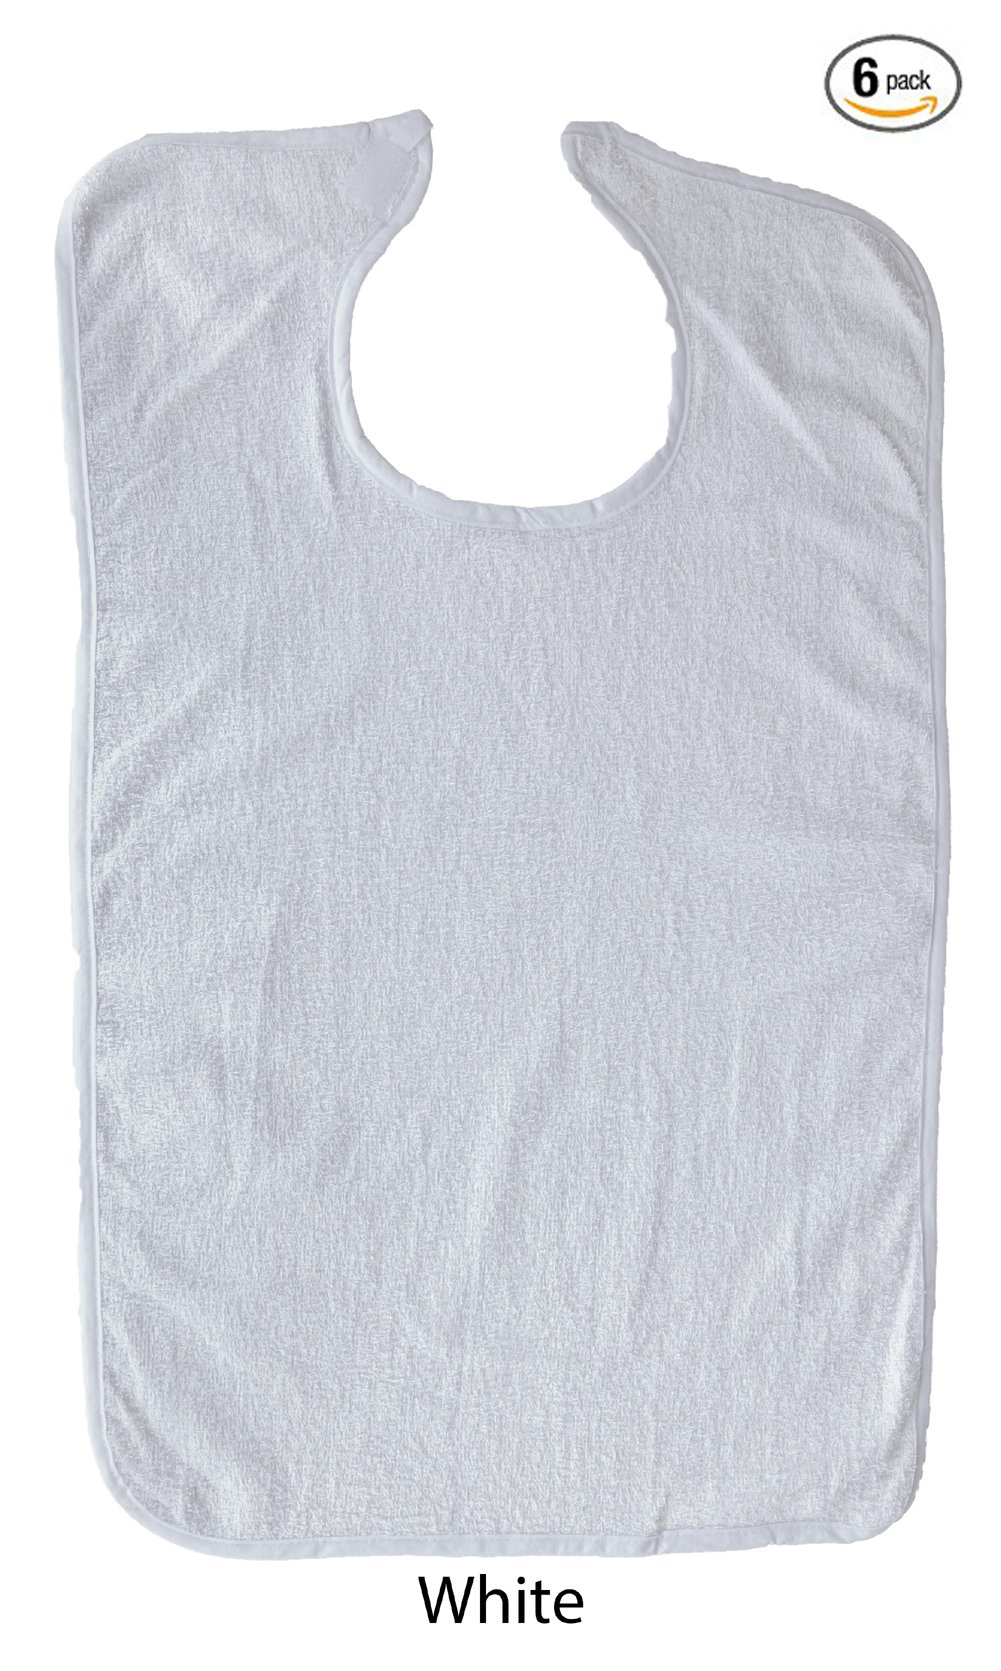 Adult Terry Cloth Bib With Velcro Closure Size 18 X 30 - 6 Pack - White